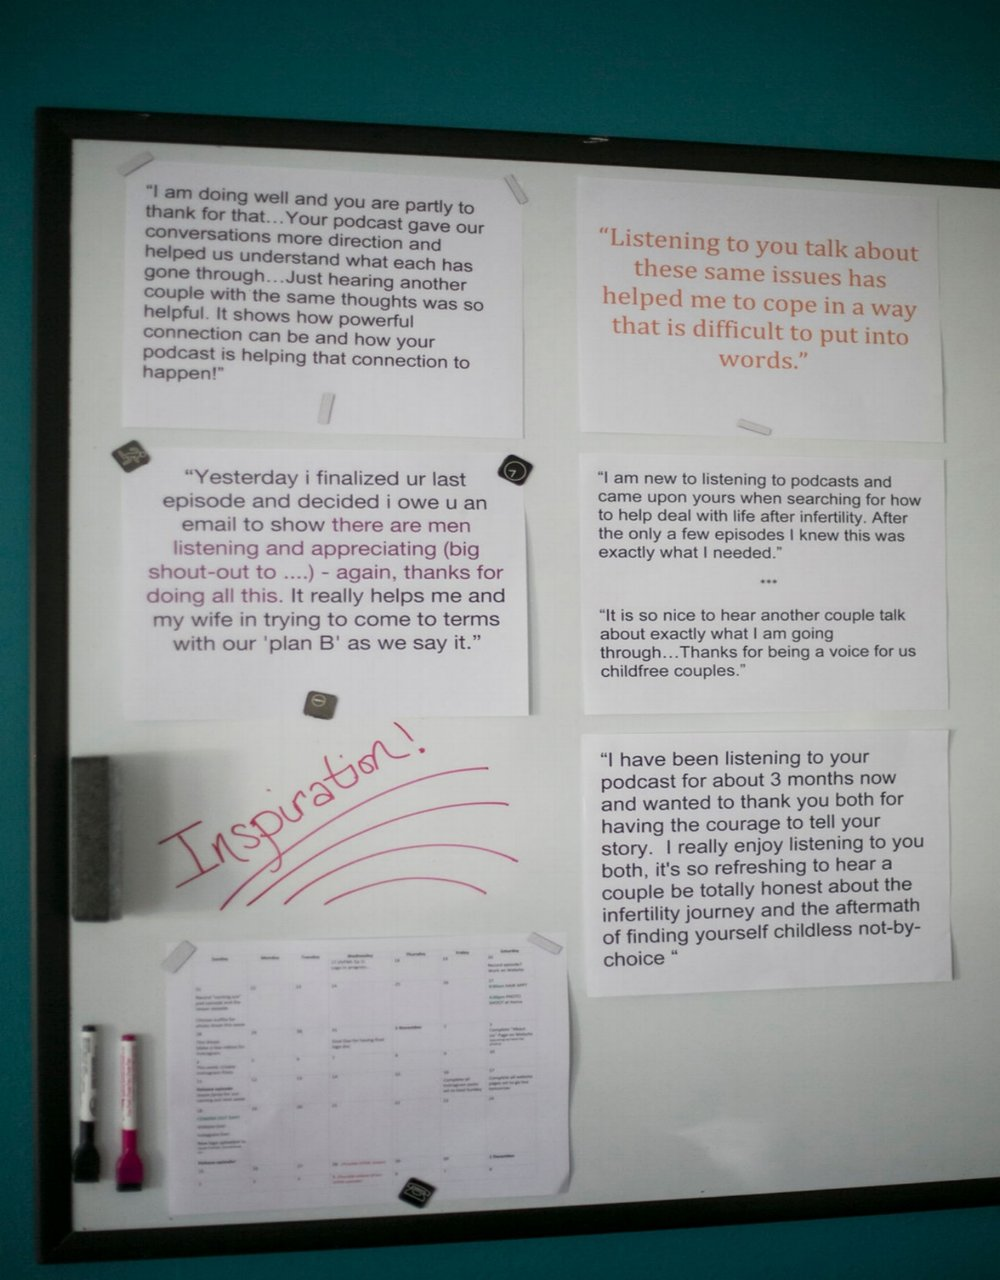 We keep quotes from listener emails up in our podcasting room as inspiration! We love our listeners!